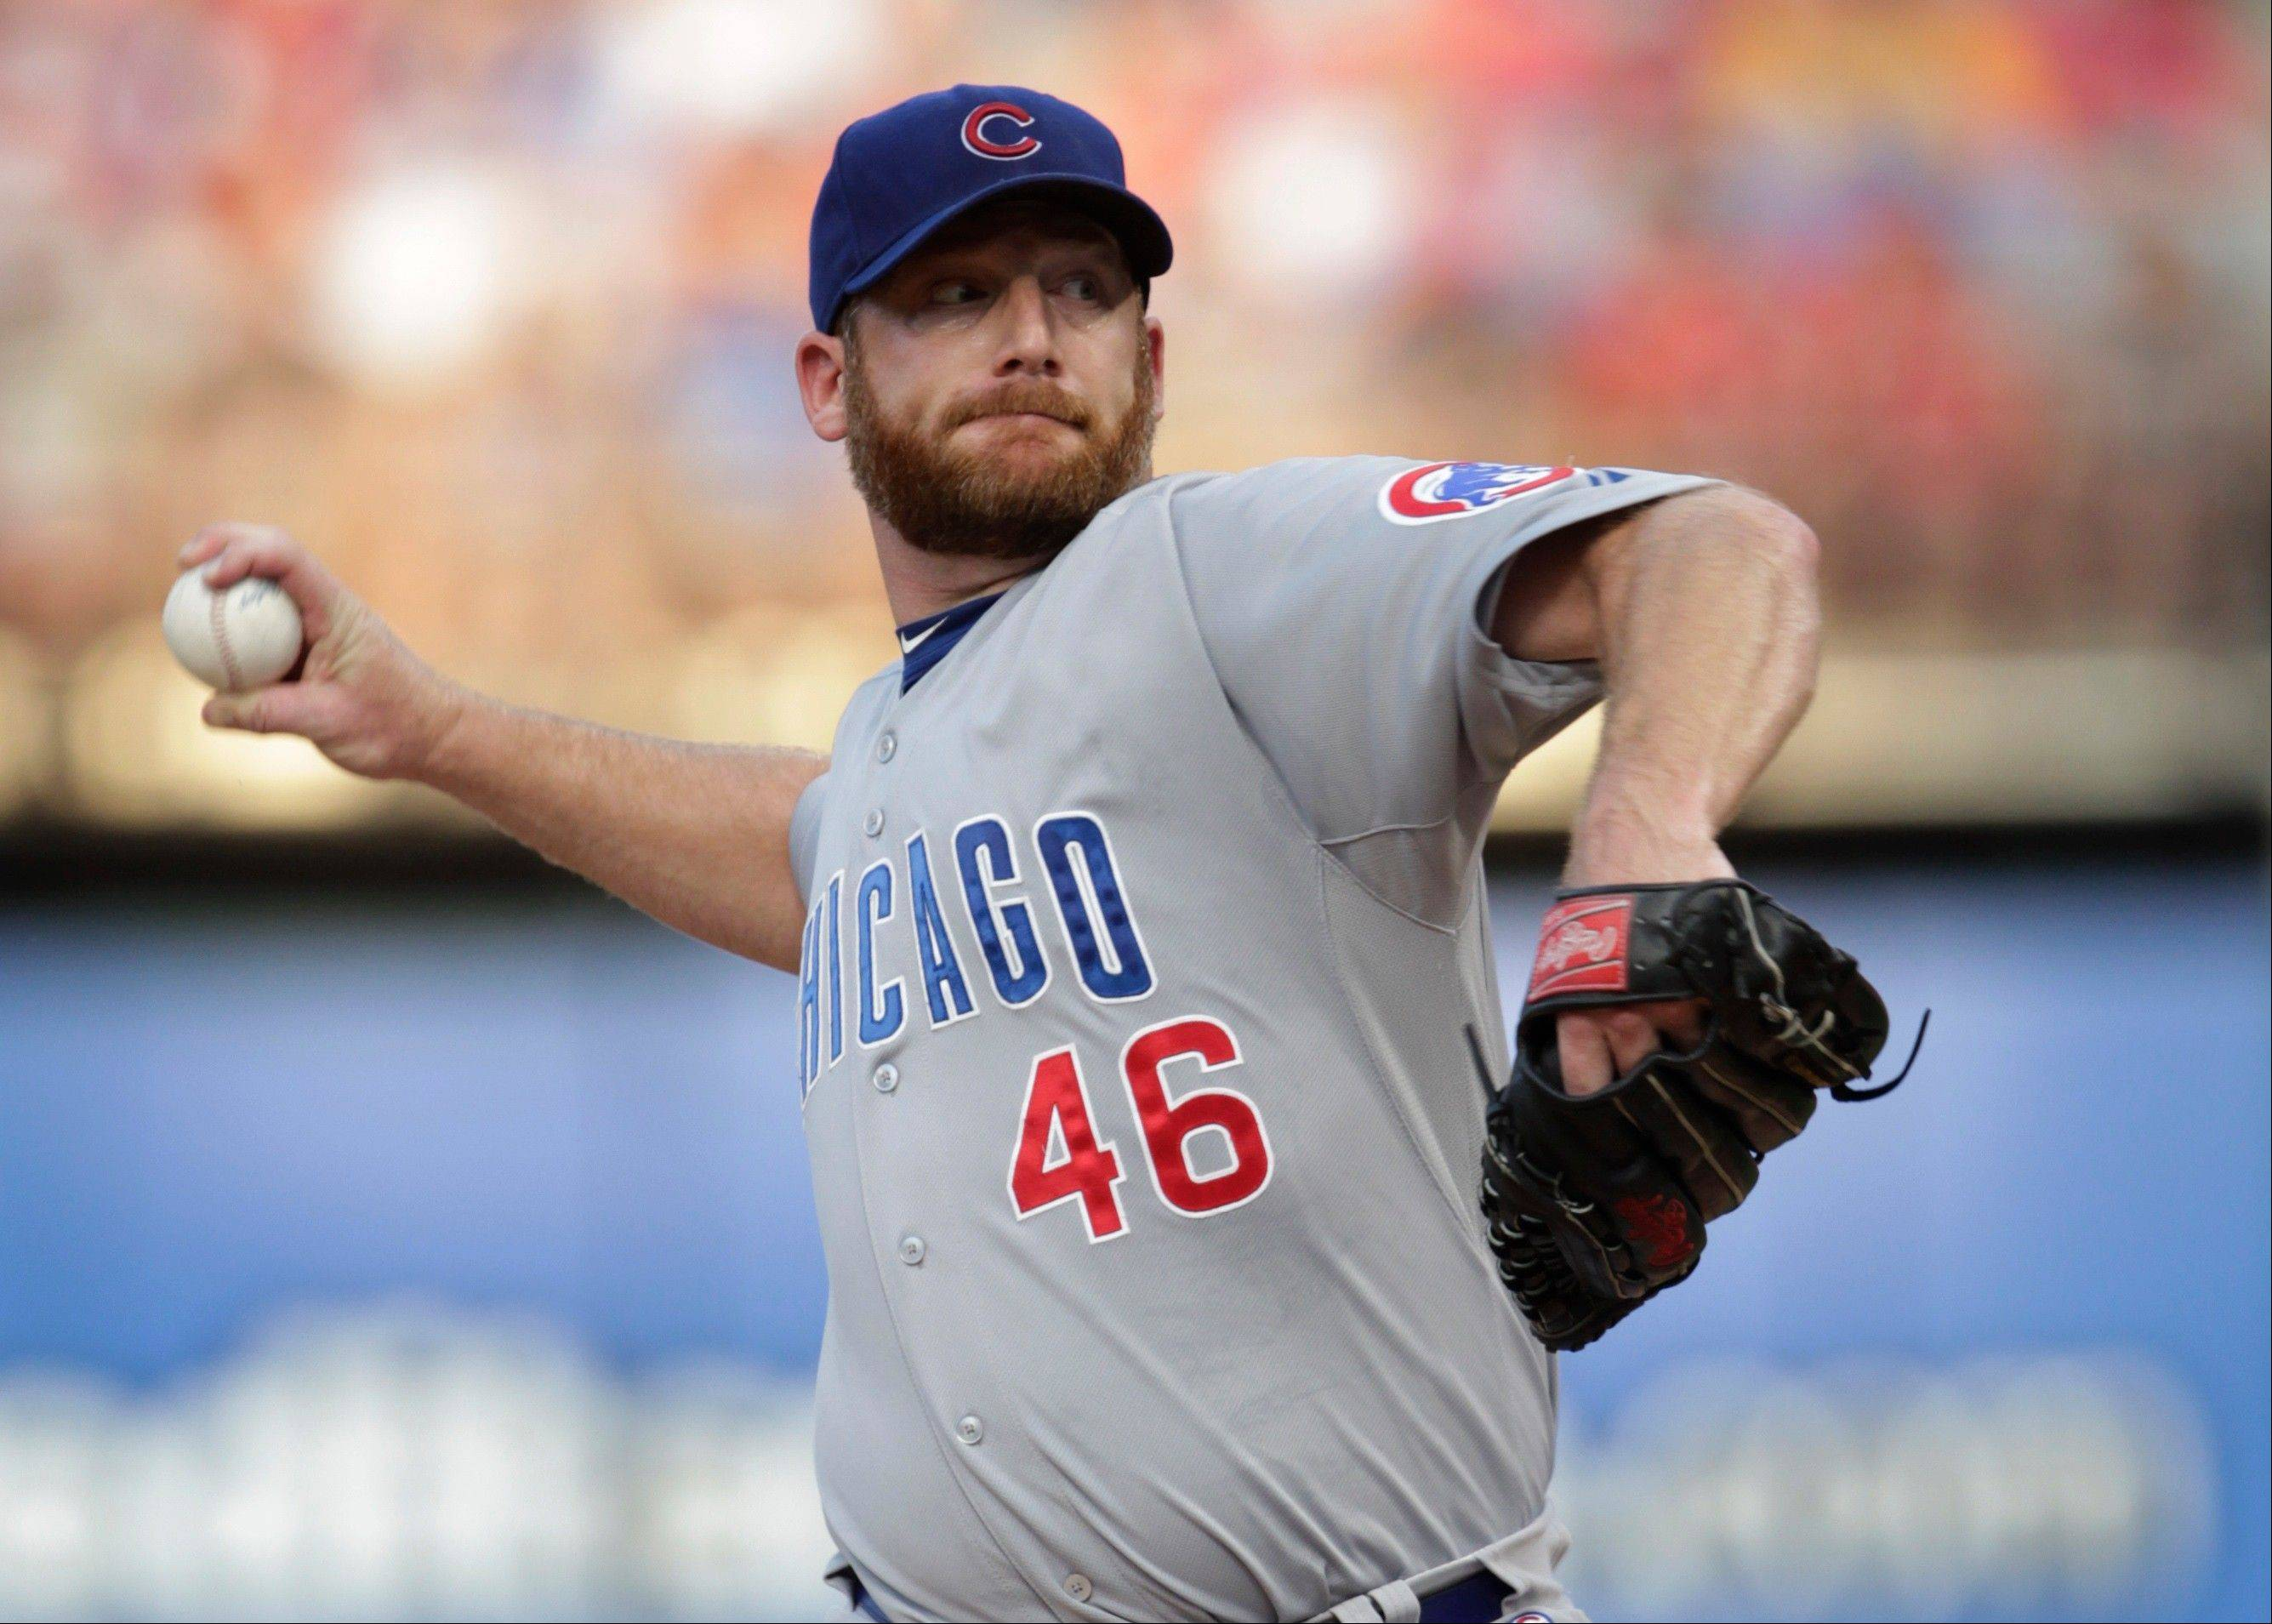 No reason to blame Cubs' Dempster for no trade